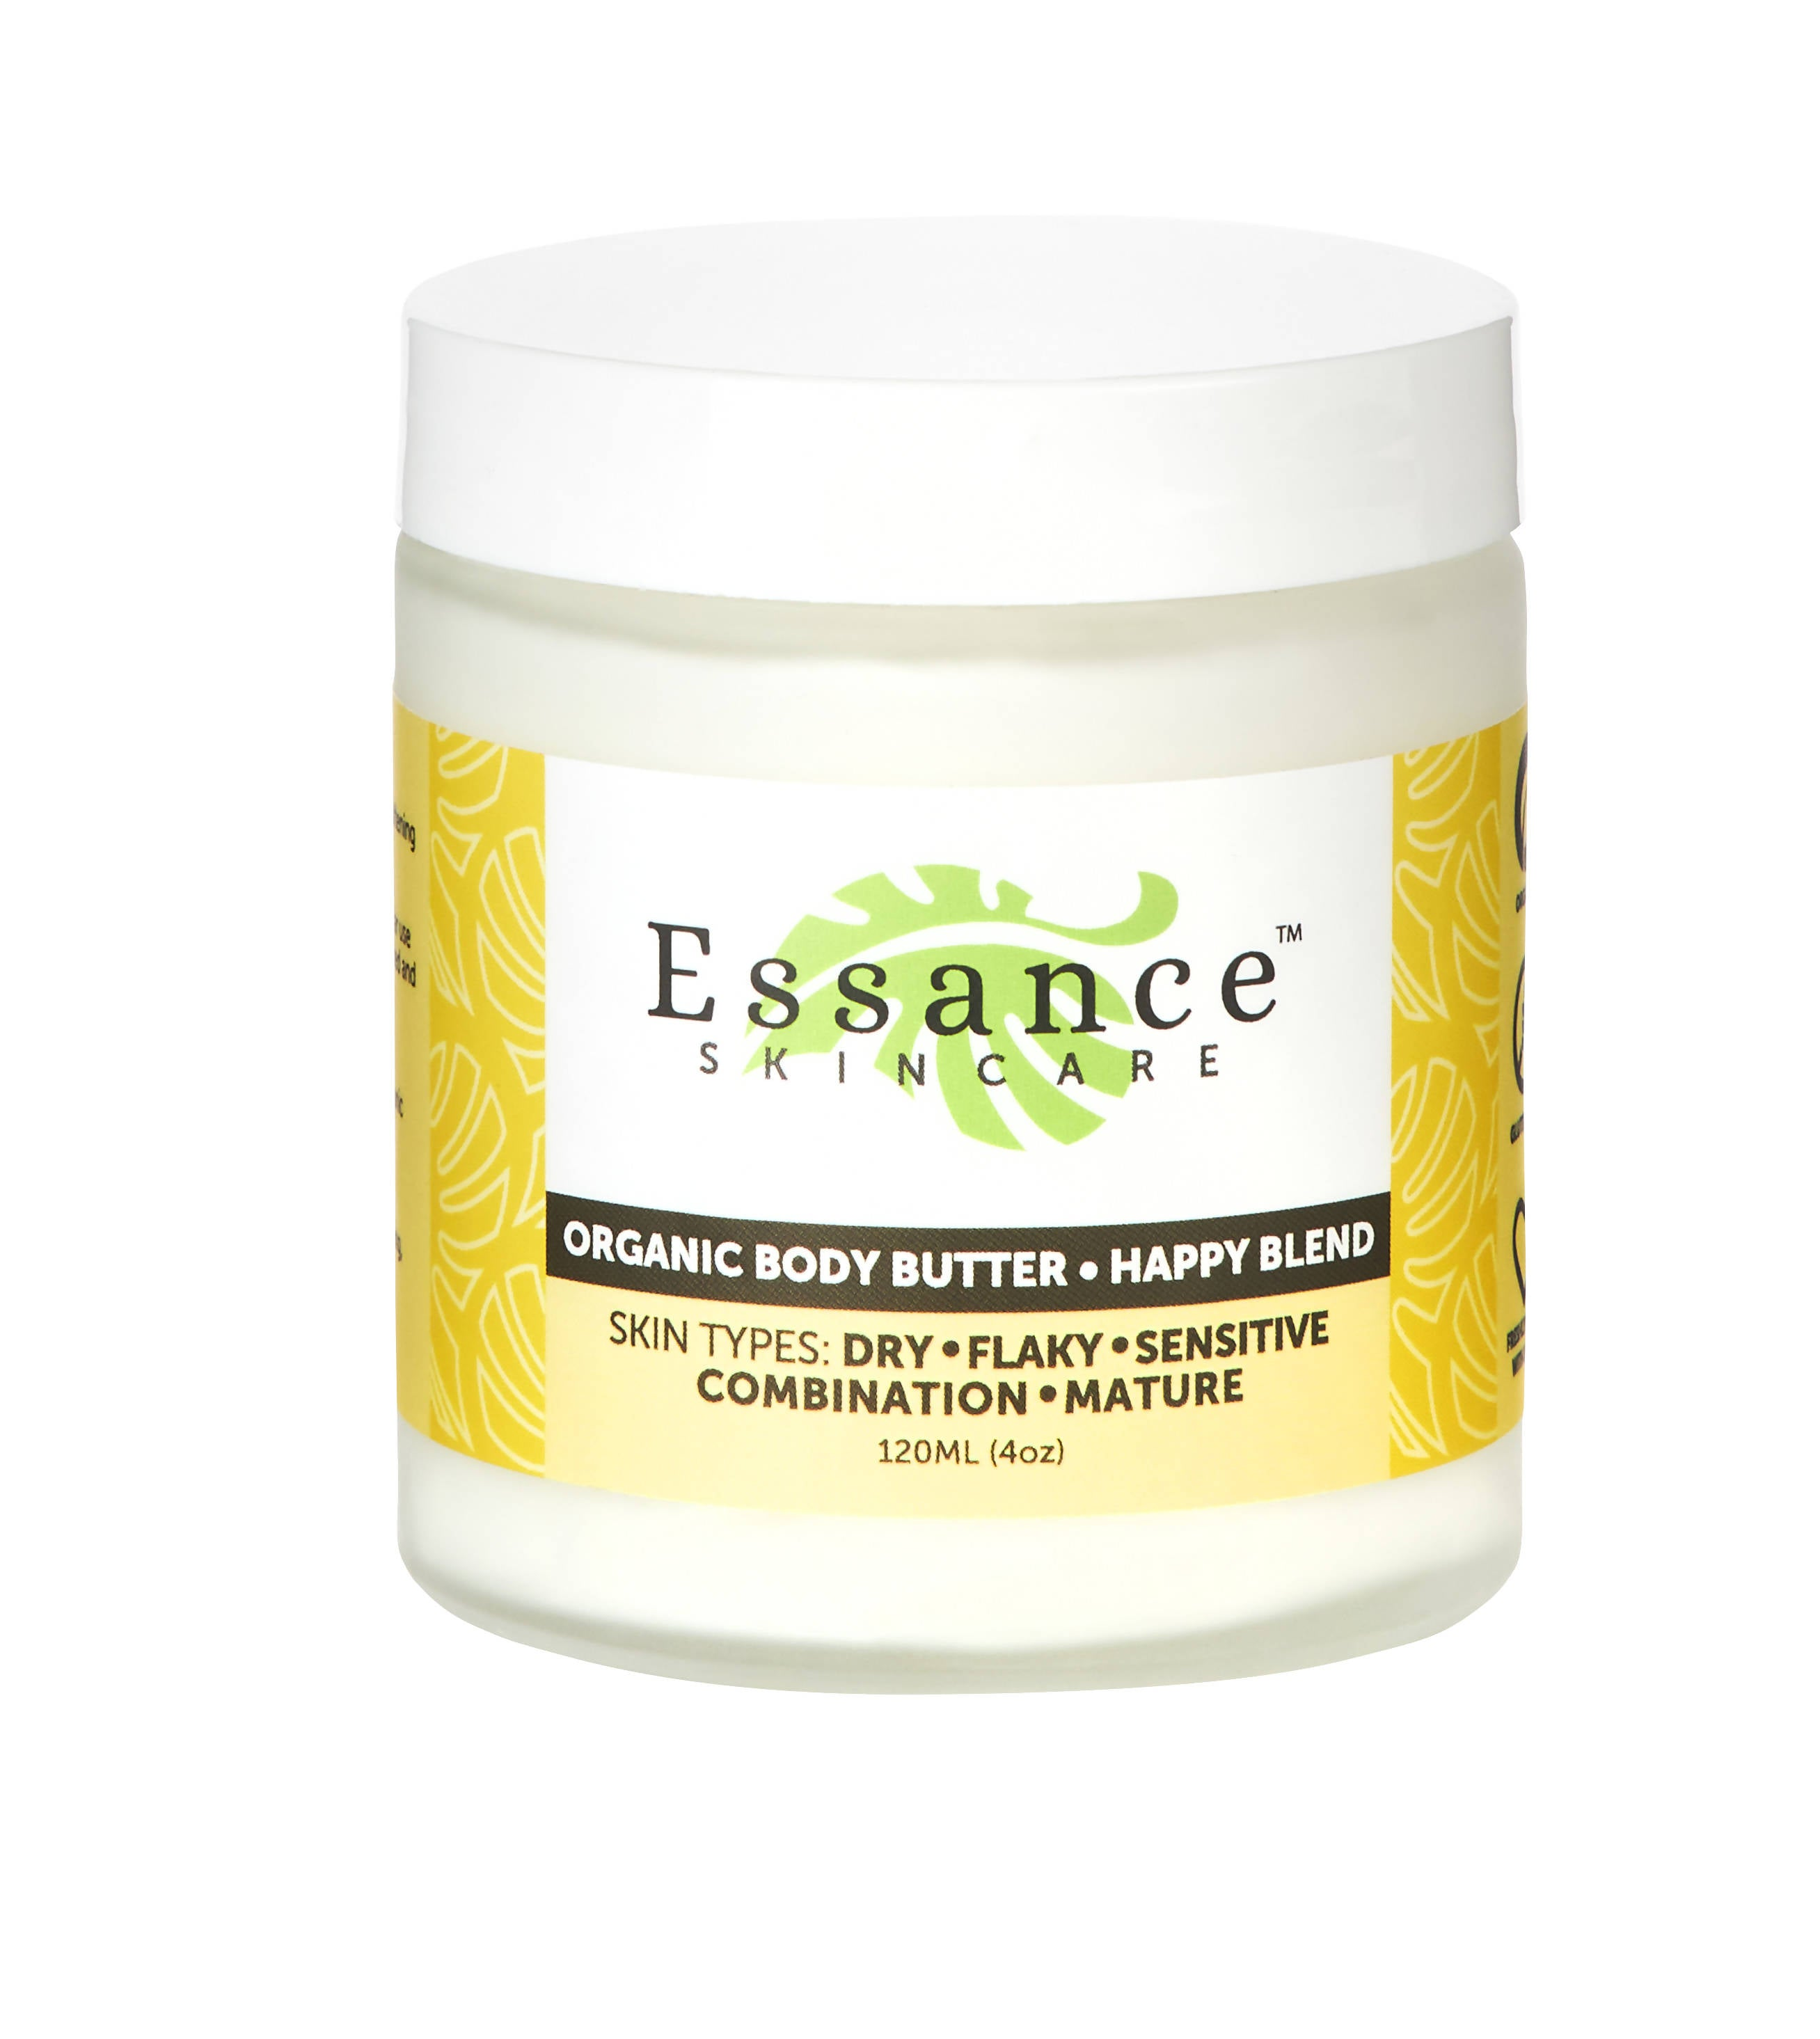 Organic Body Butter- Happy Blend